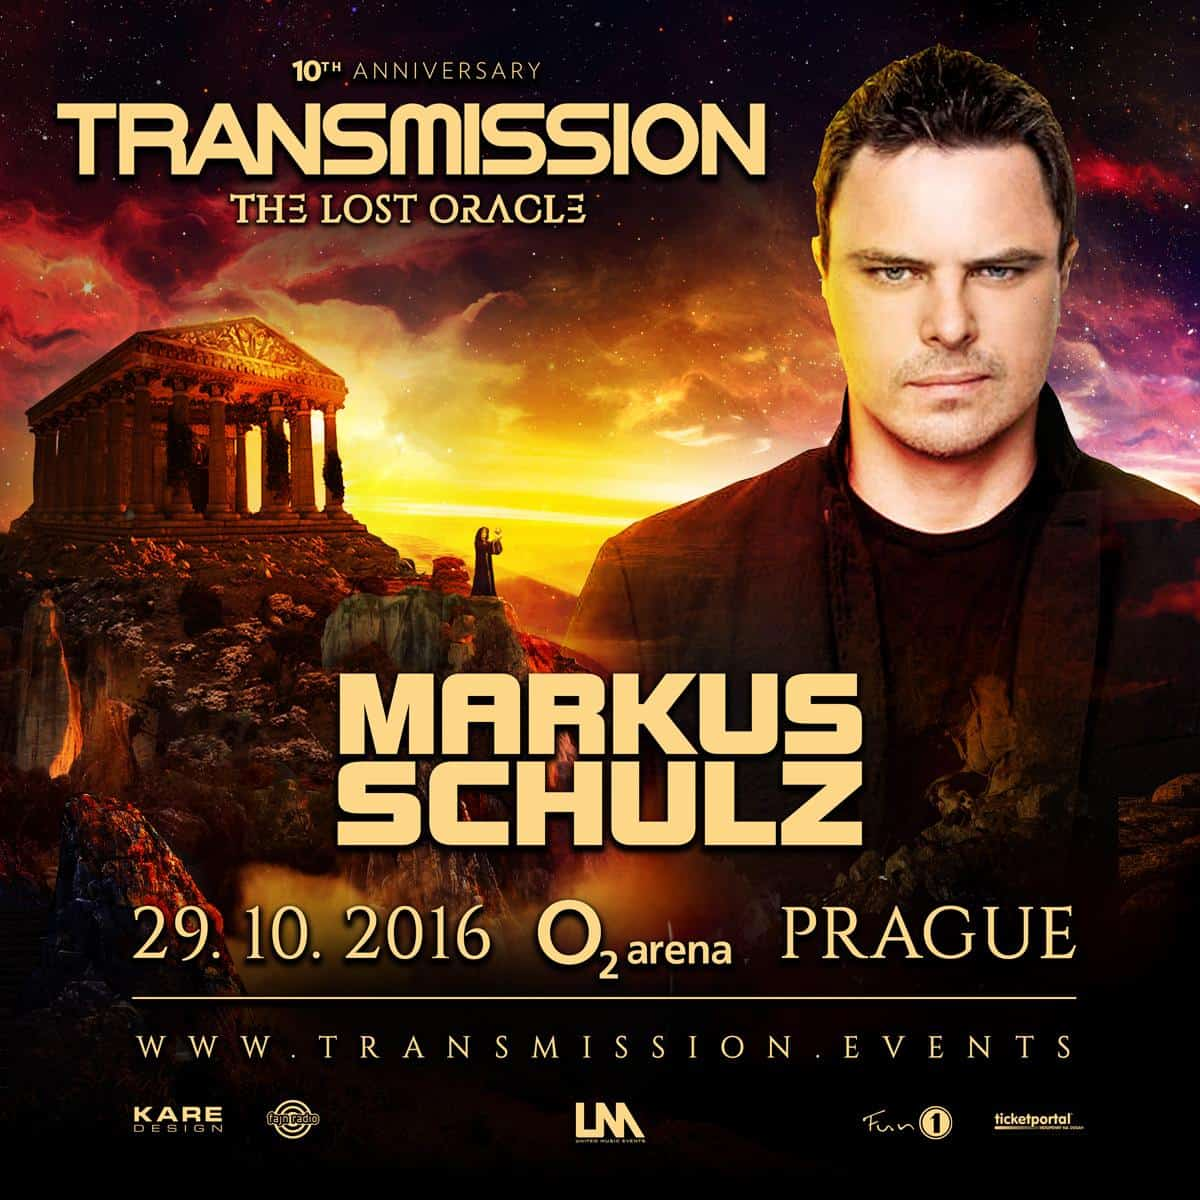 Markus Schulz live at Transmission - The Lost Oracle (29.10.2016) @ Prague, Czech Republic